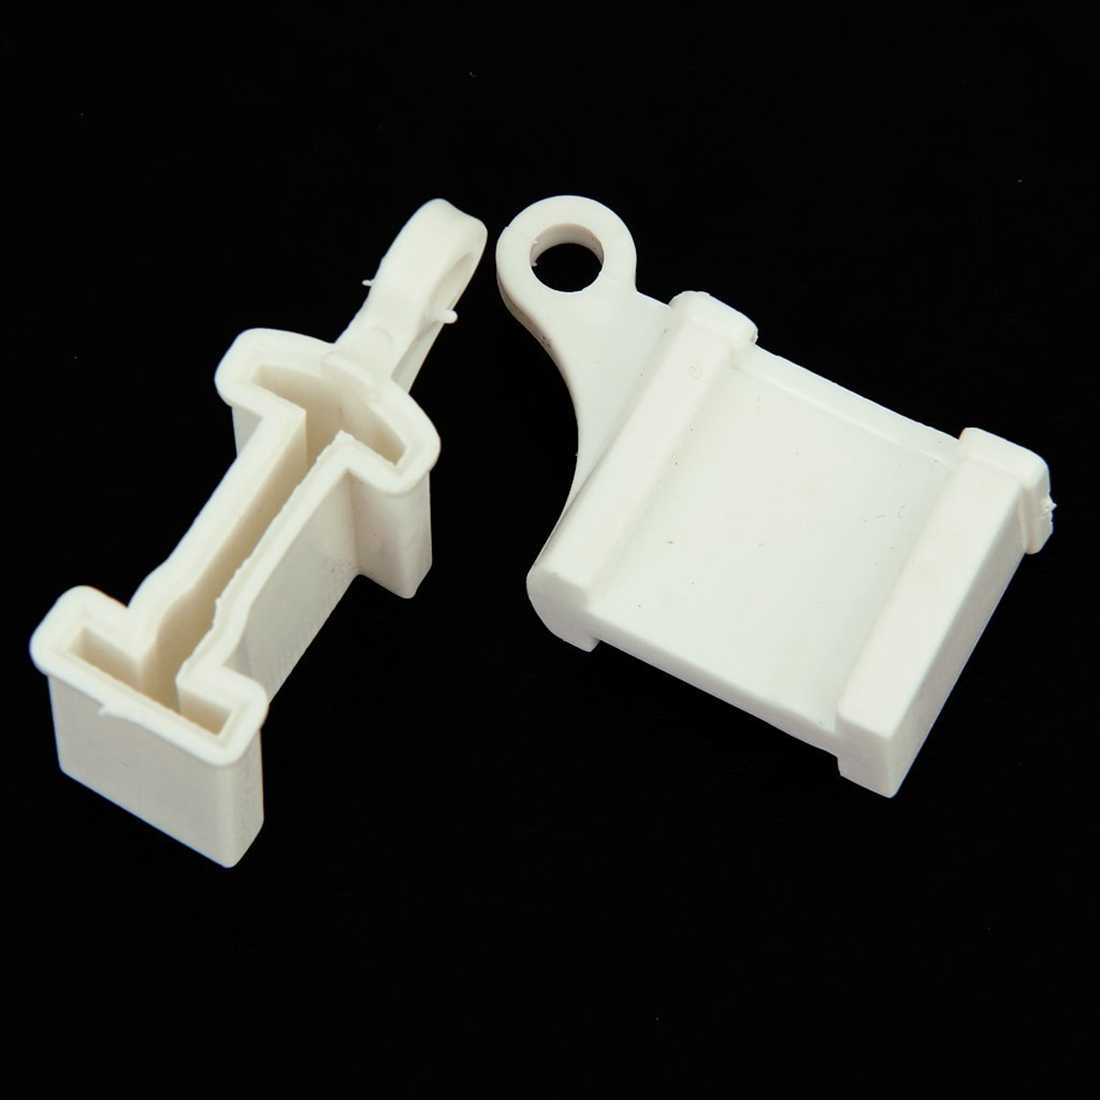 2Pcs Window Curtain Rail Track Ends End Stops